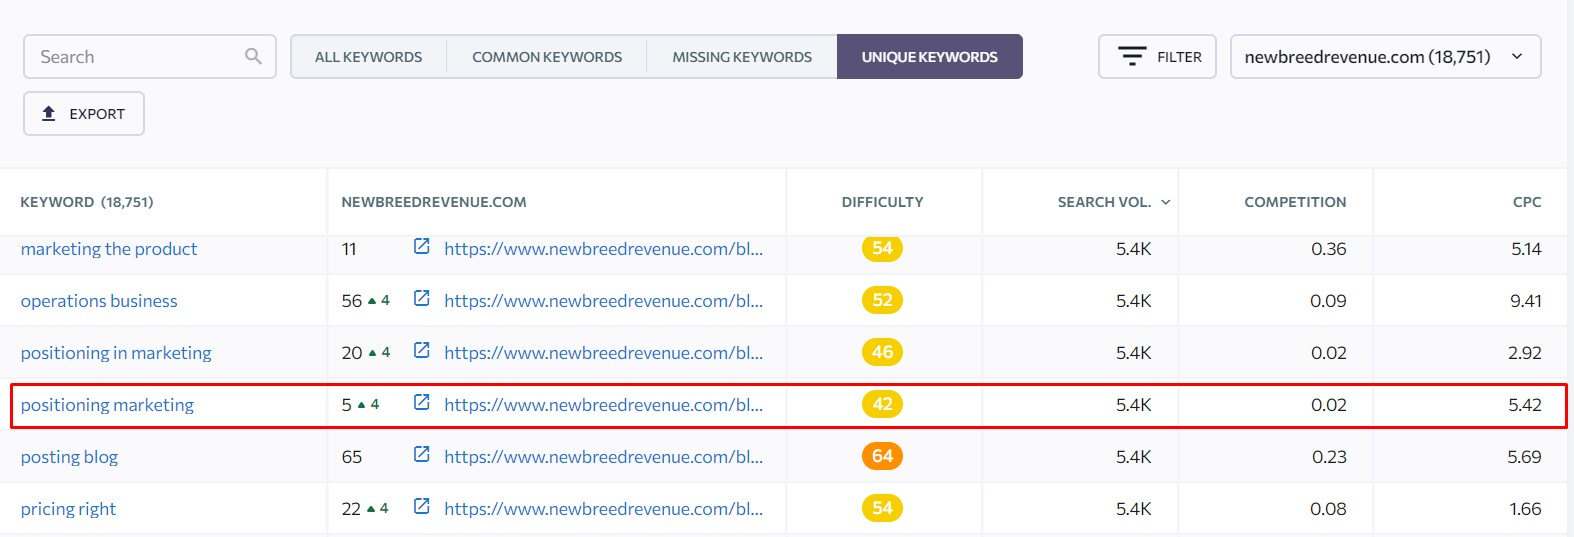 great example of keyword from keyword gap analysis for the same level competitors